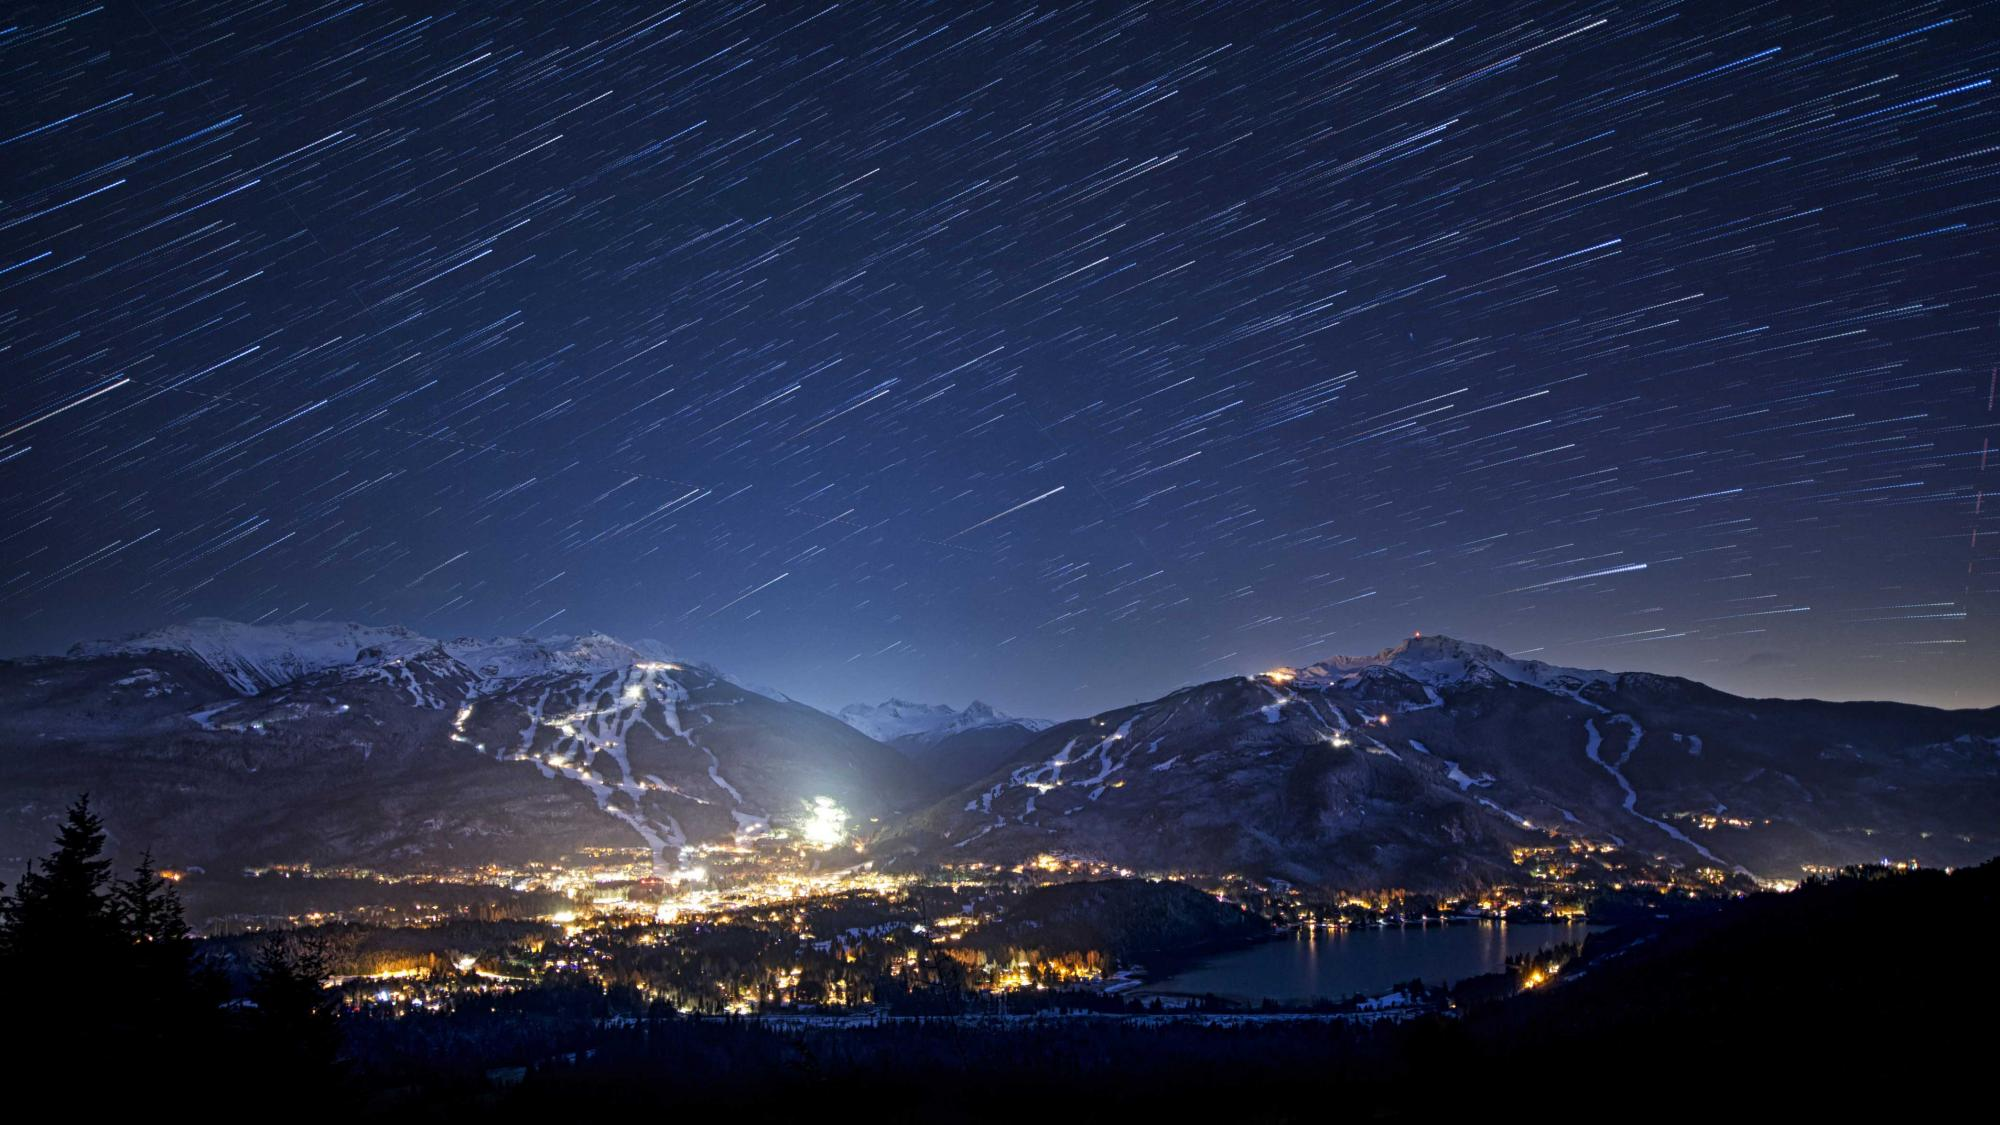 Whistler Blackcomb village at night